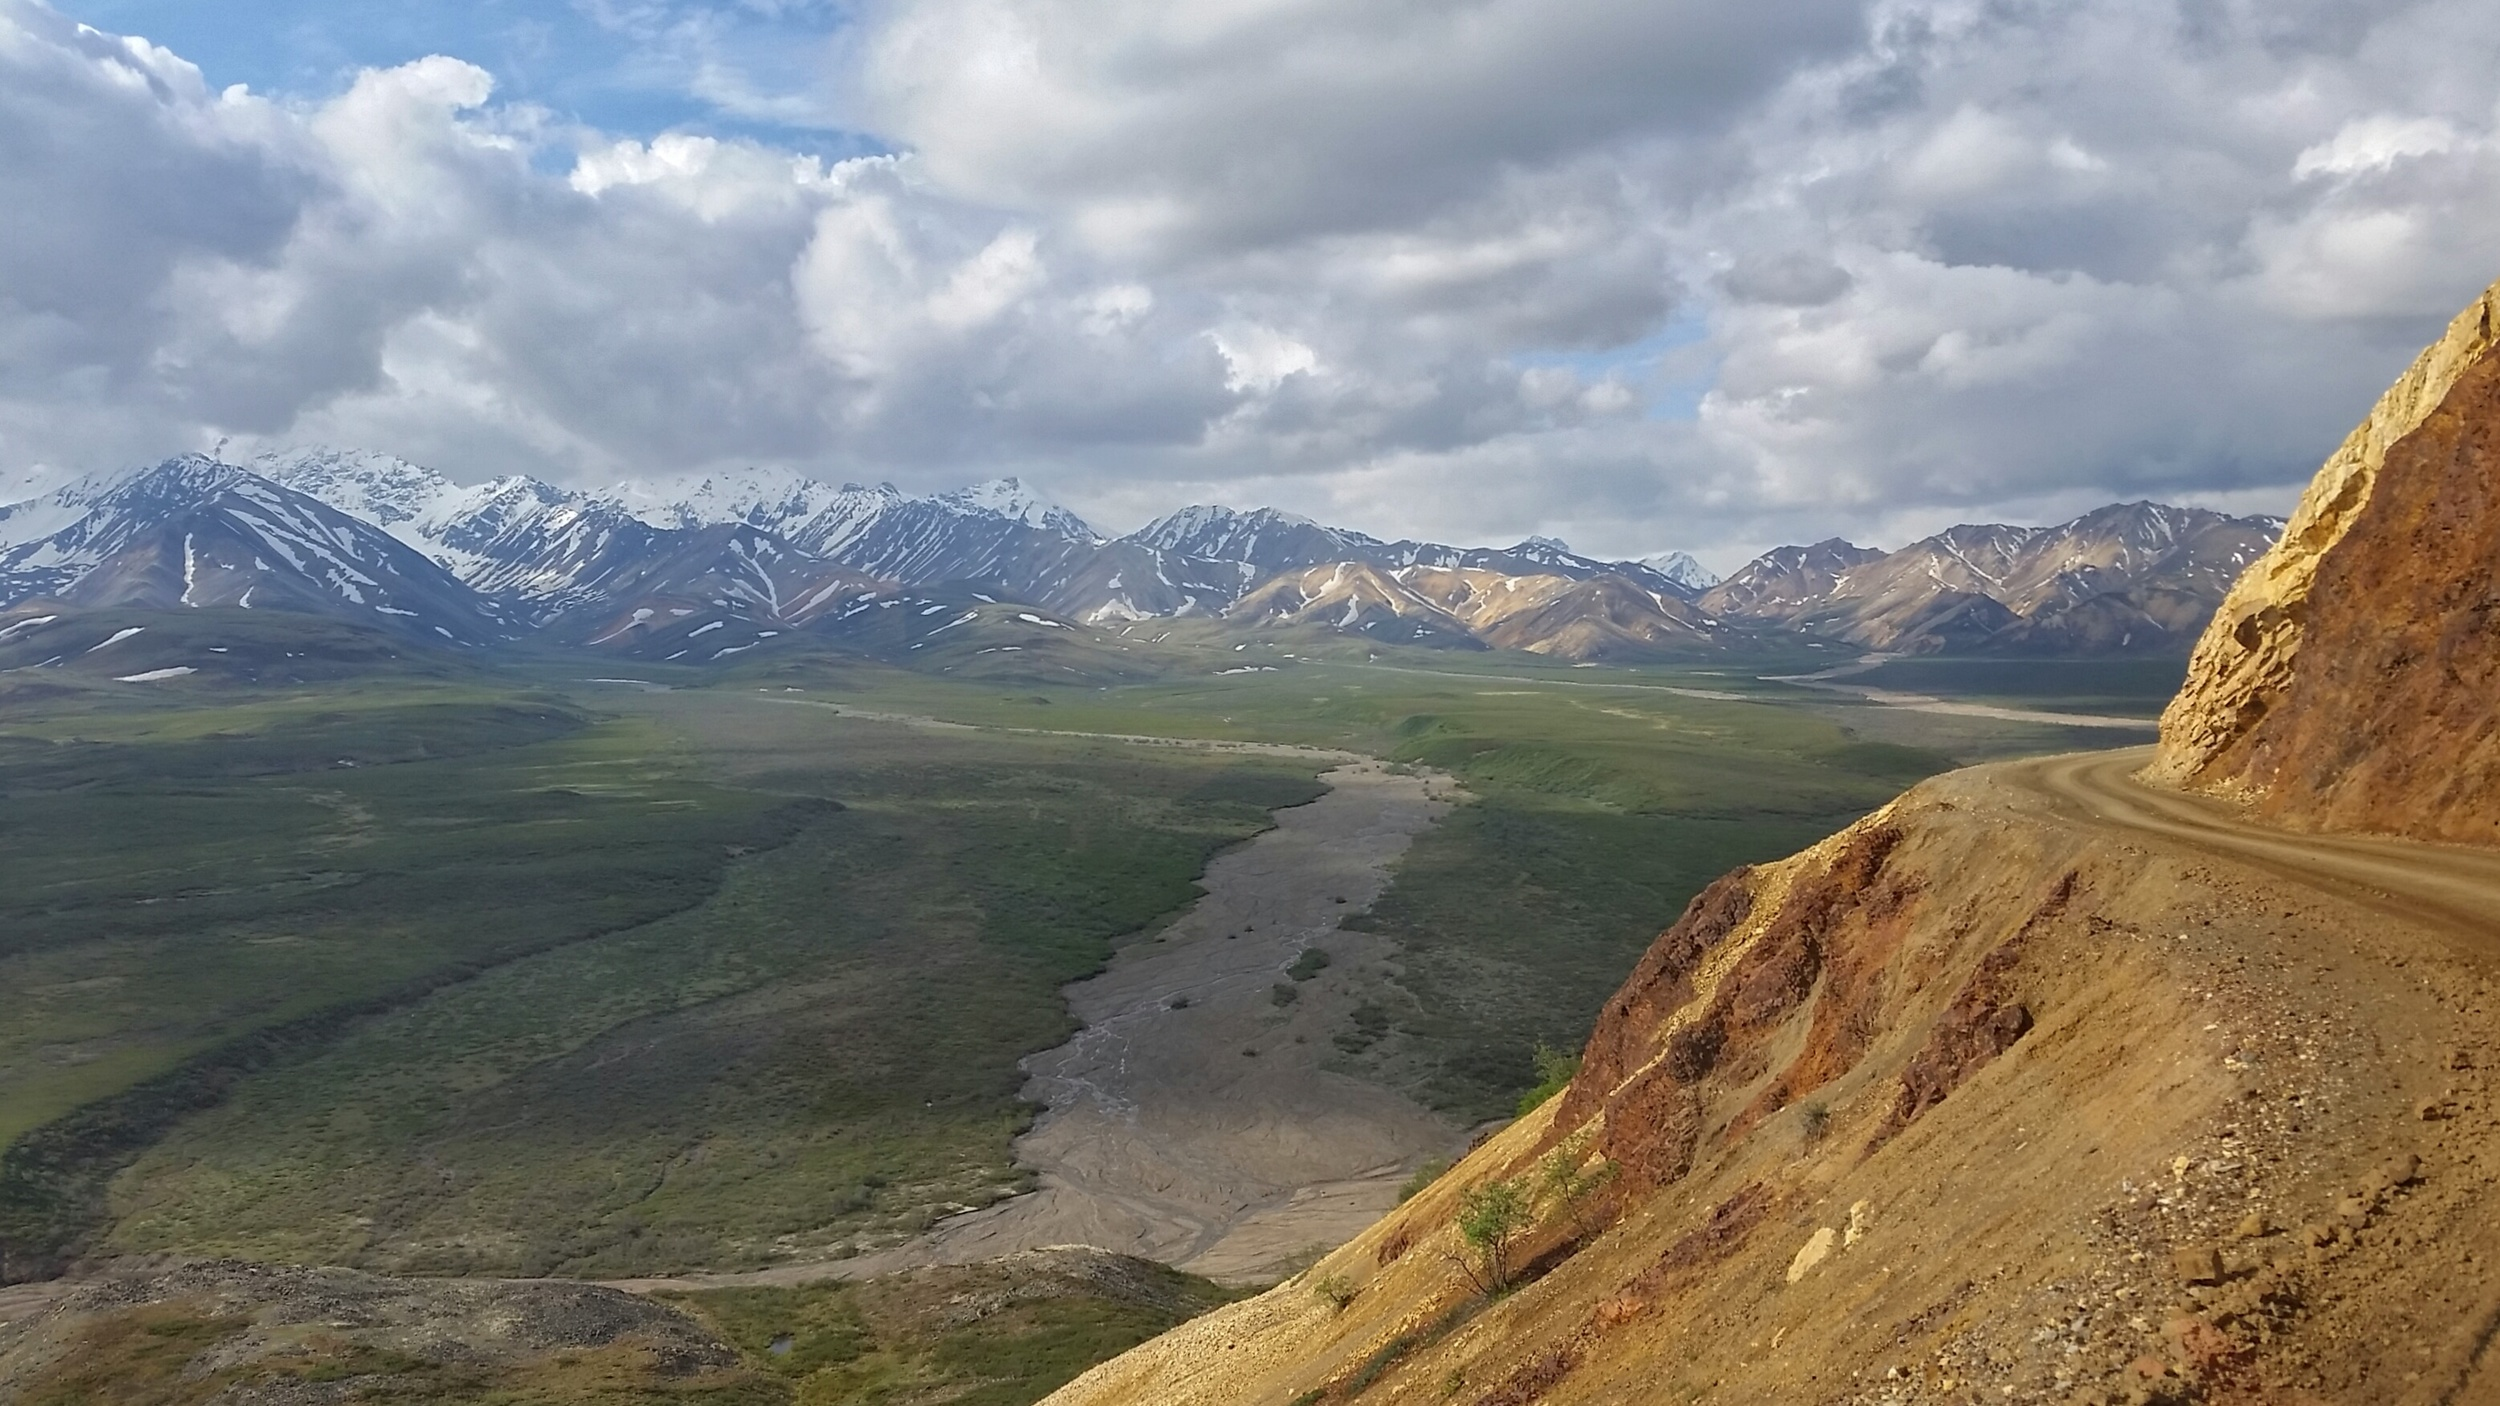 The road leading to Unit 13 in Denali National Park, Alaska.